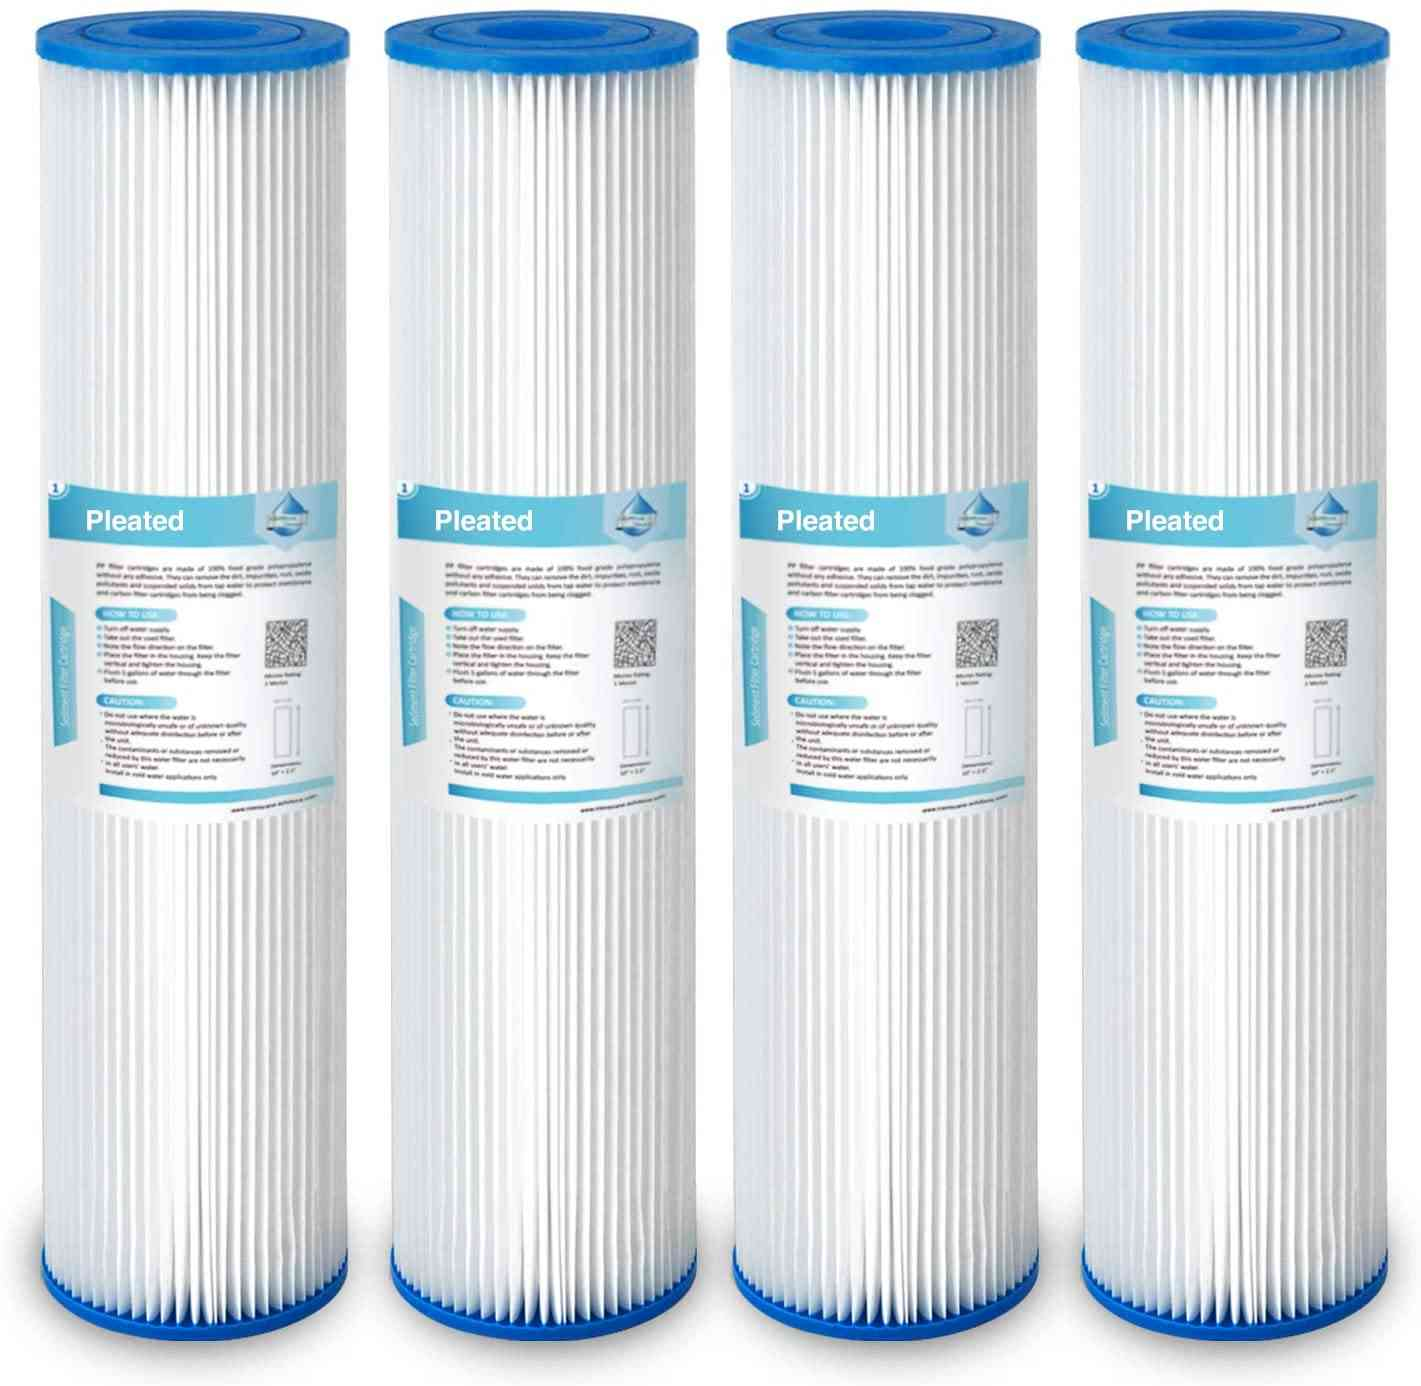 Micron Pleated Polyester Sediment Water Filter, Replacement Cartridge, Whole House